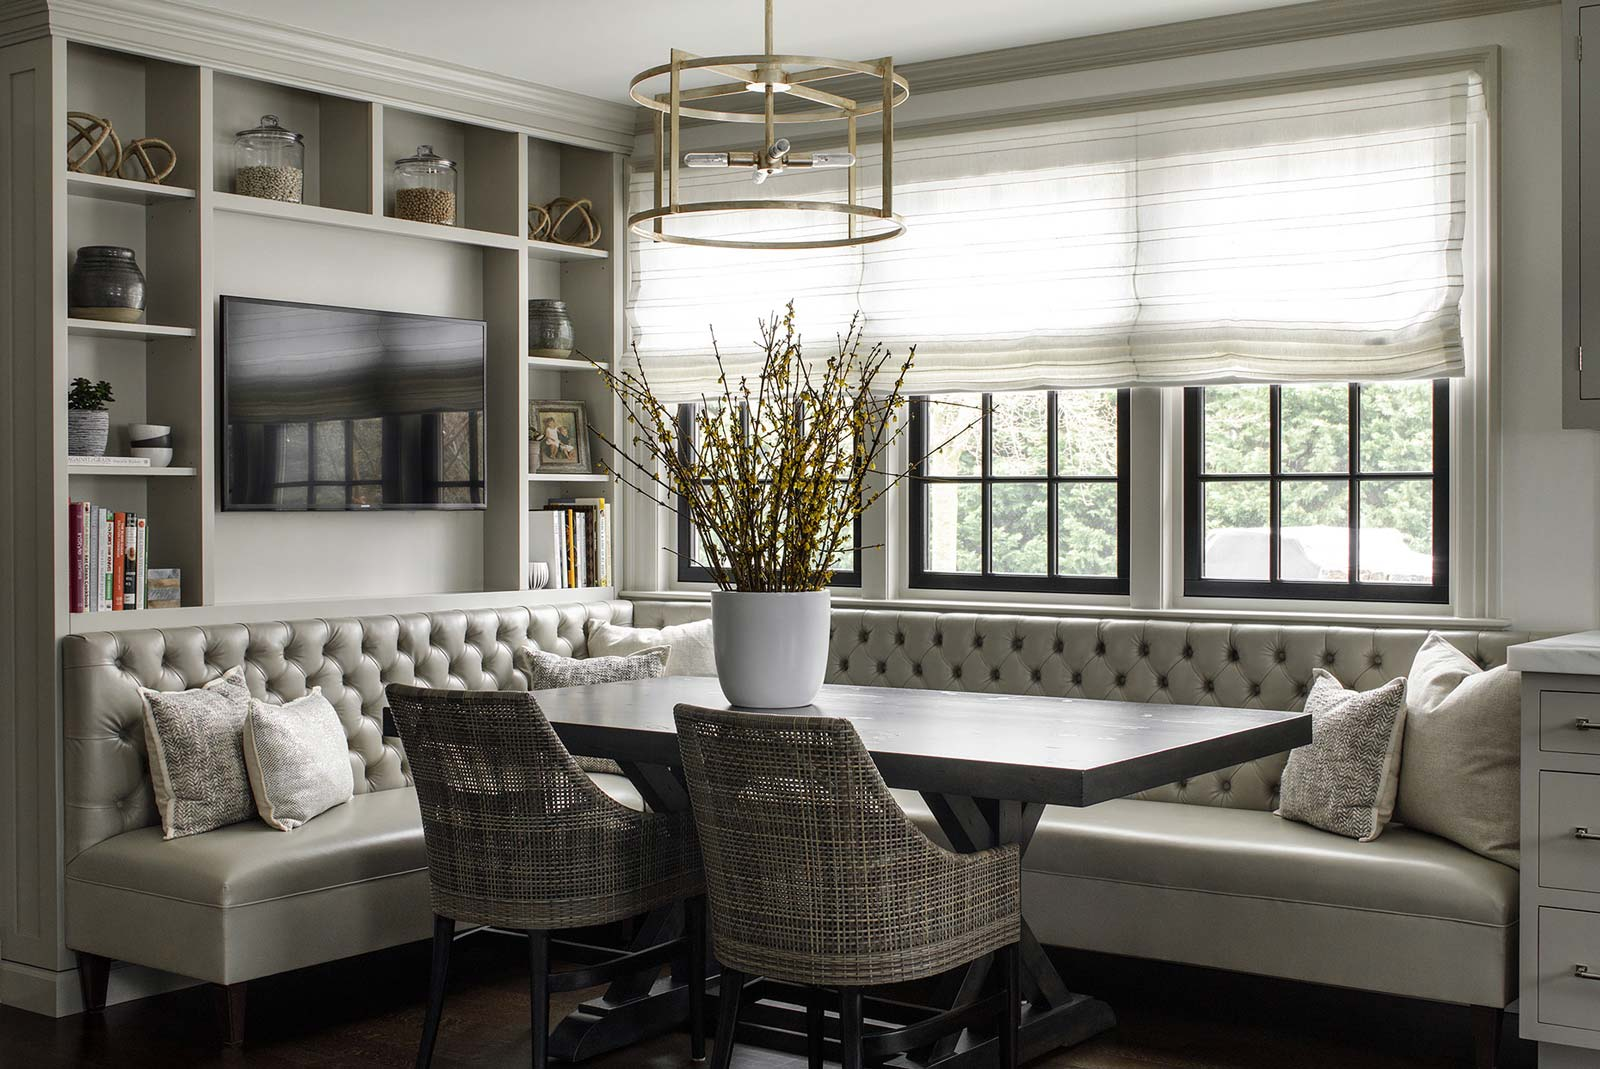 Dining Room Breakfast Nook Table With Bench Seating And Shelving